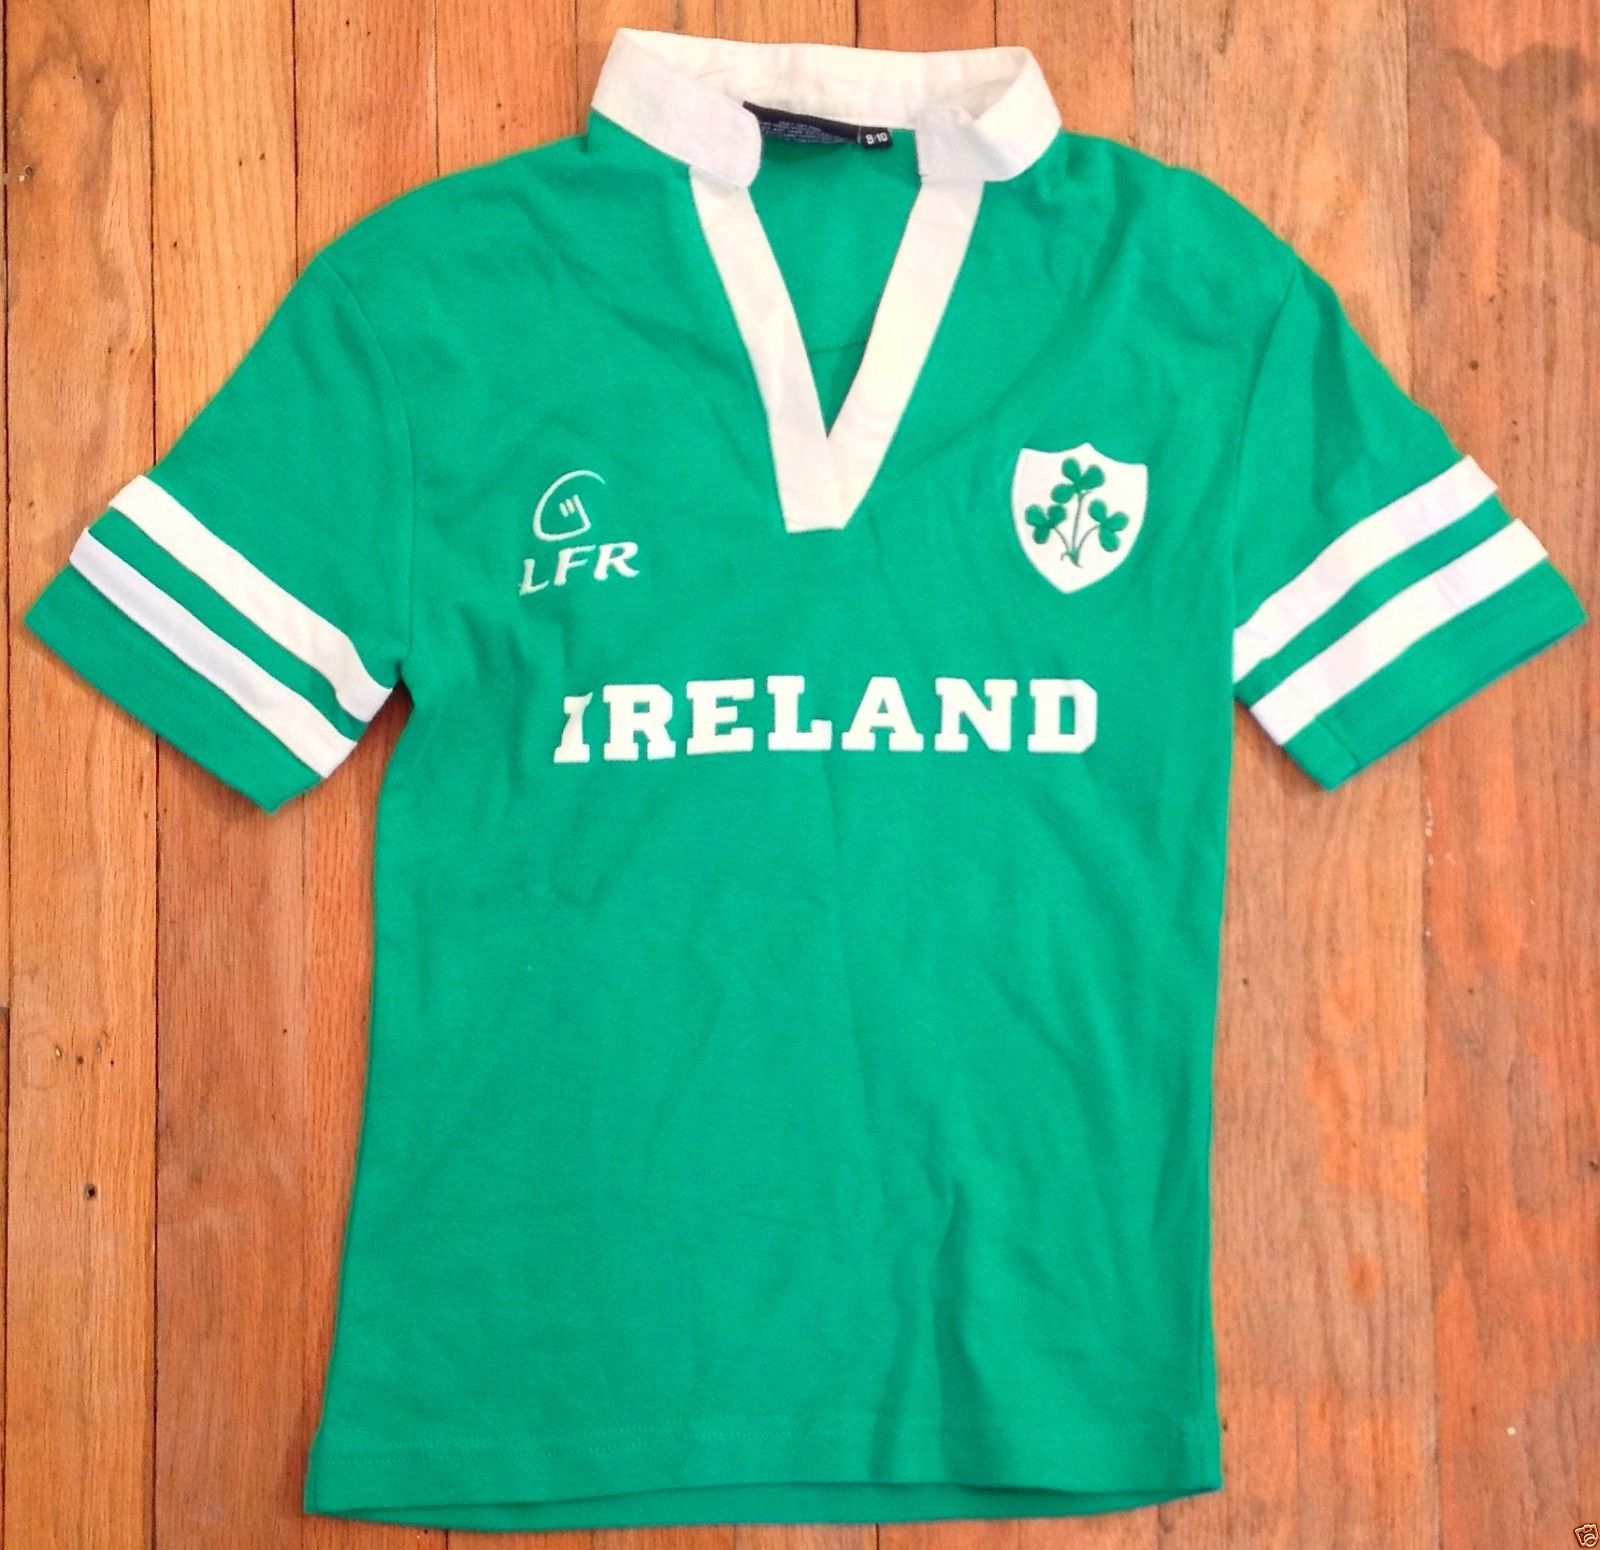 Lfr Live For Rugby Ireland Kids Youth Green 10 Jersey Shirt Medium 8 10 Guc Ebay Recycled Couture Fashion Apparel Shop Ireland Rugby Jersey Shirt Rugby